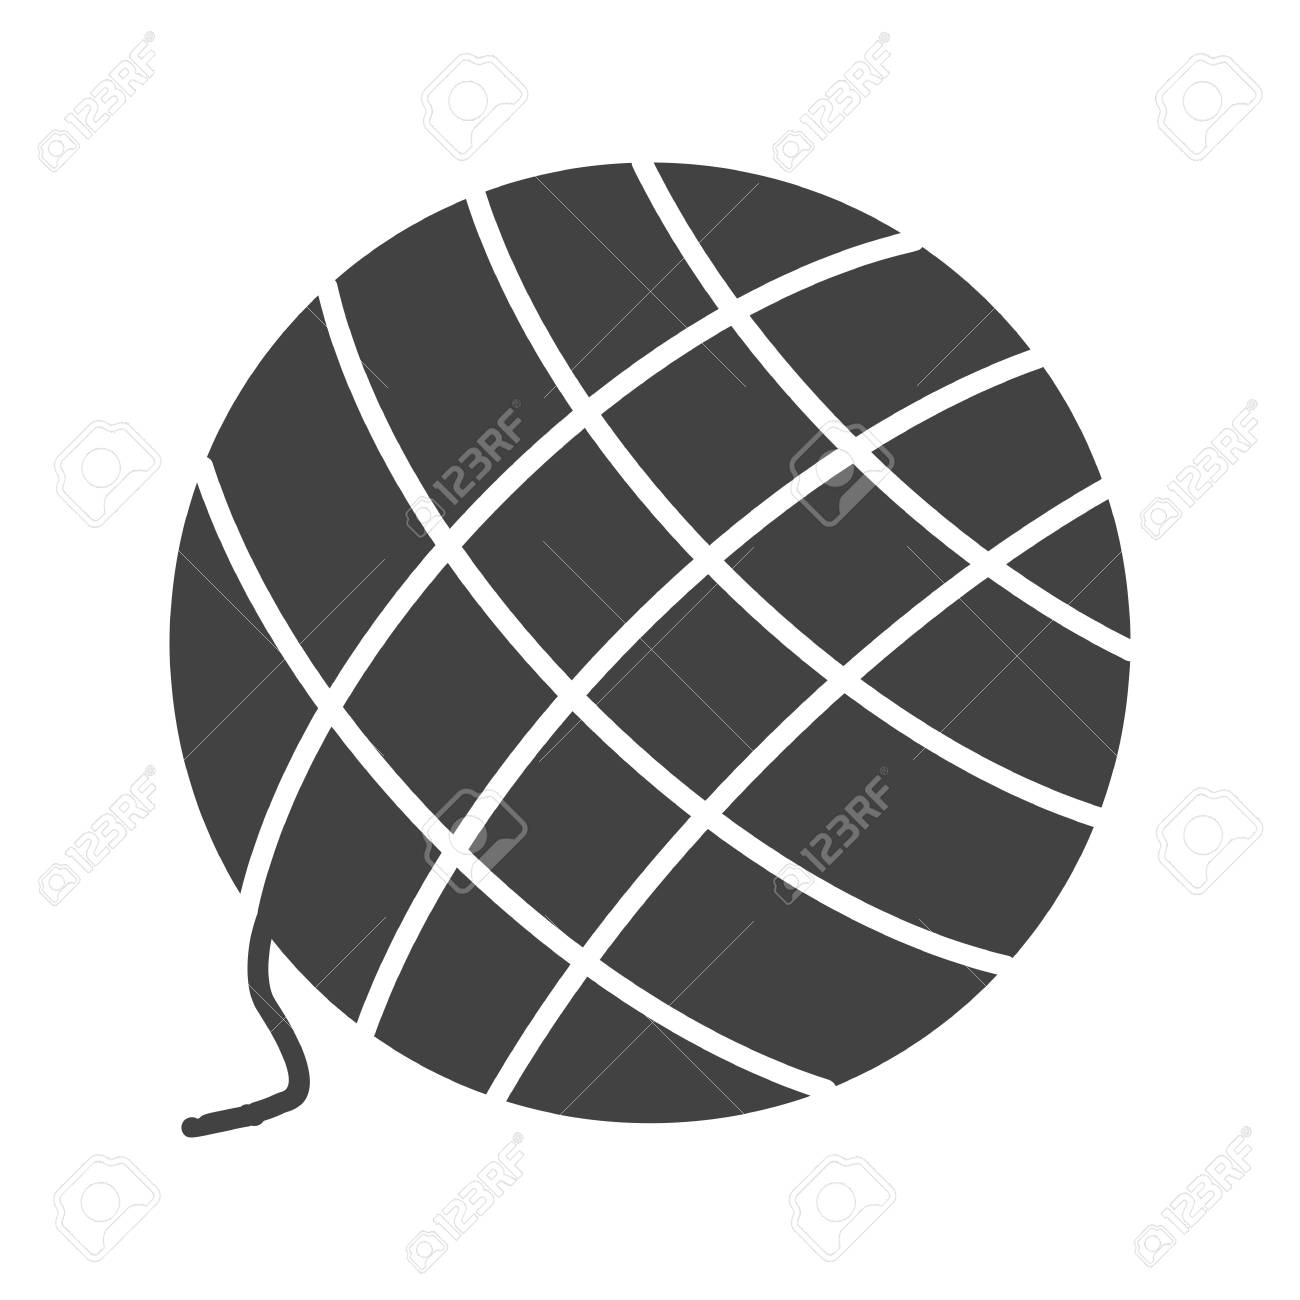 Yarn, wool, knitting icon vector image  Can also be used for